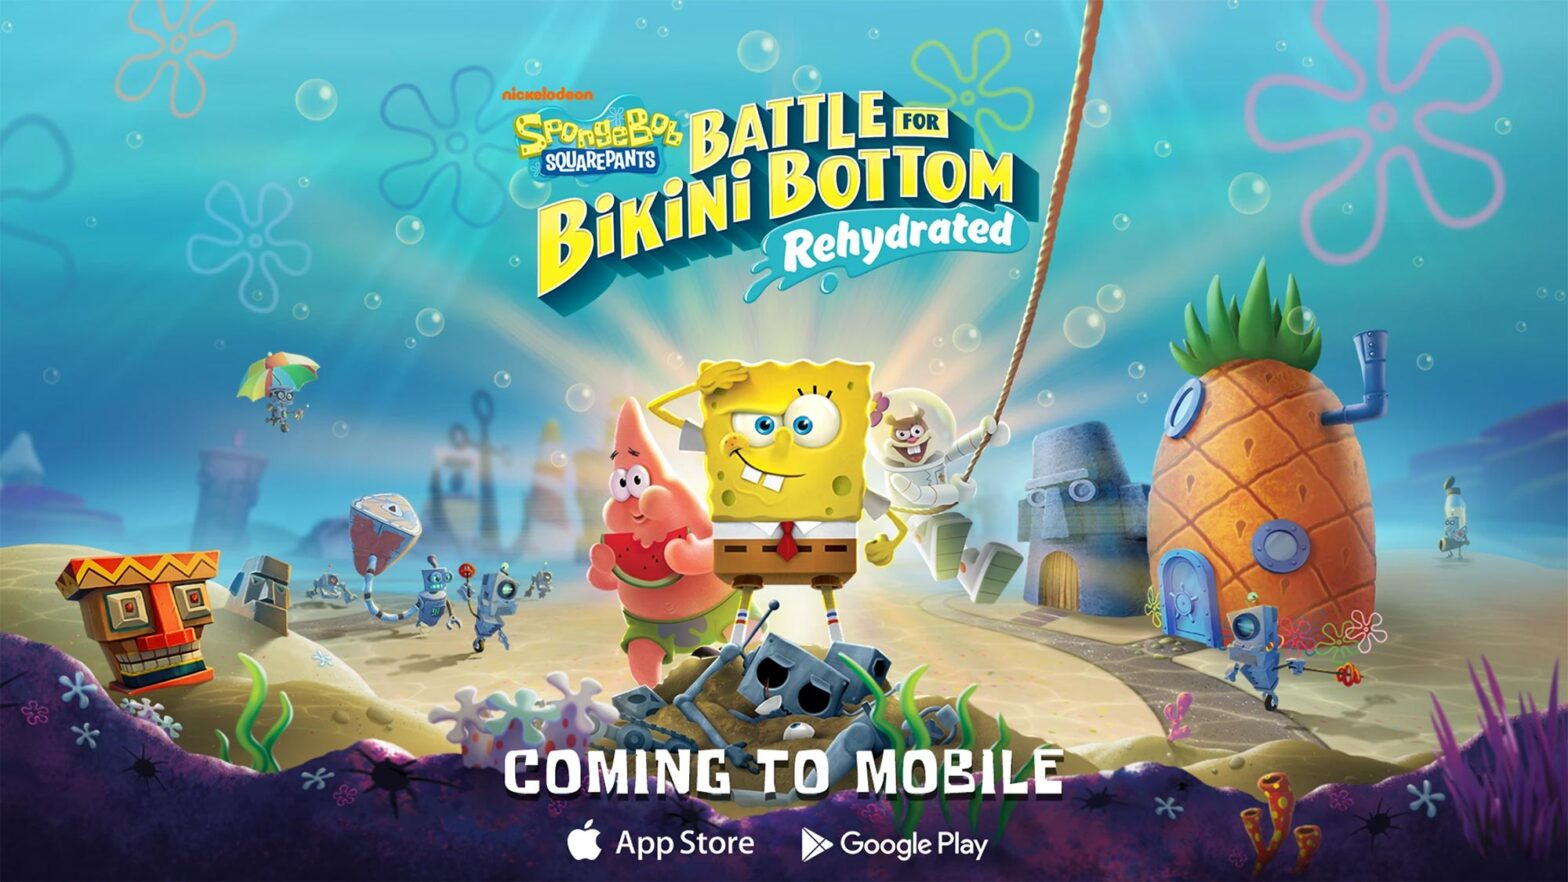 SpongeBob SquarePants: Battle for Bikini Bottom Mobile